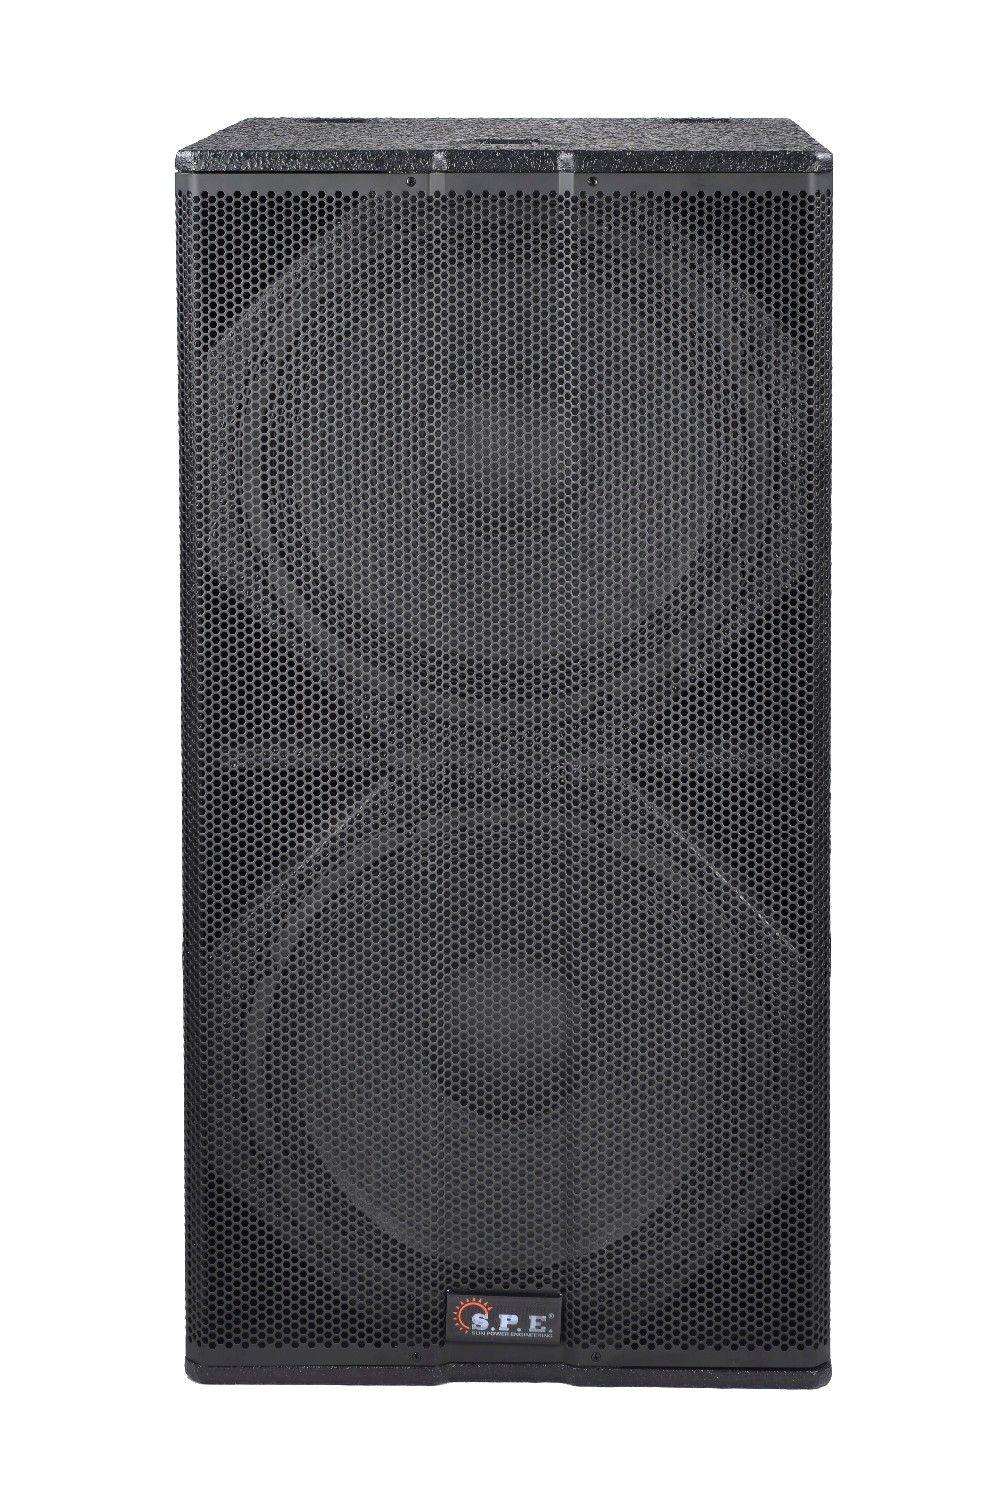 "sp-218B dual 18"" subwoofer speaker 18 sound speakers concert subwoofer spl"